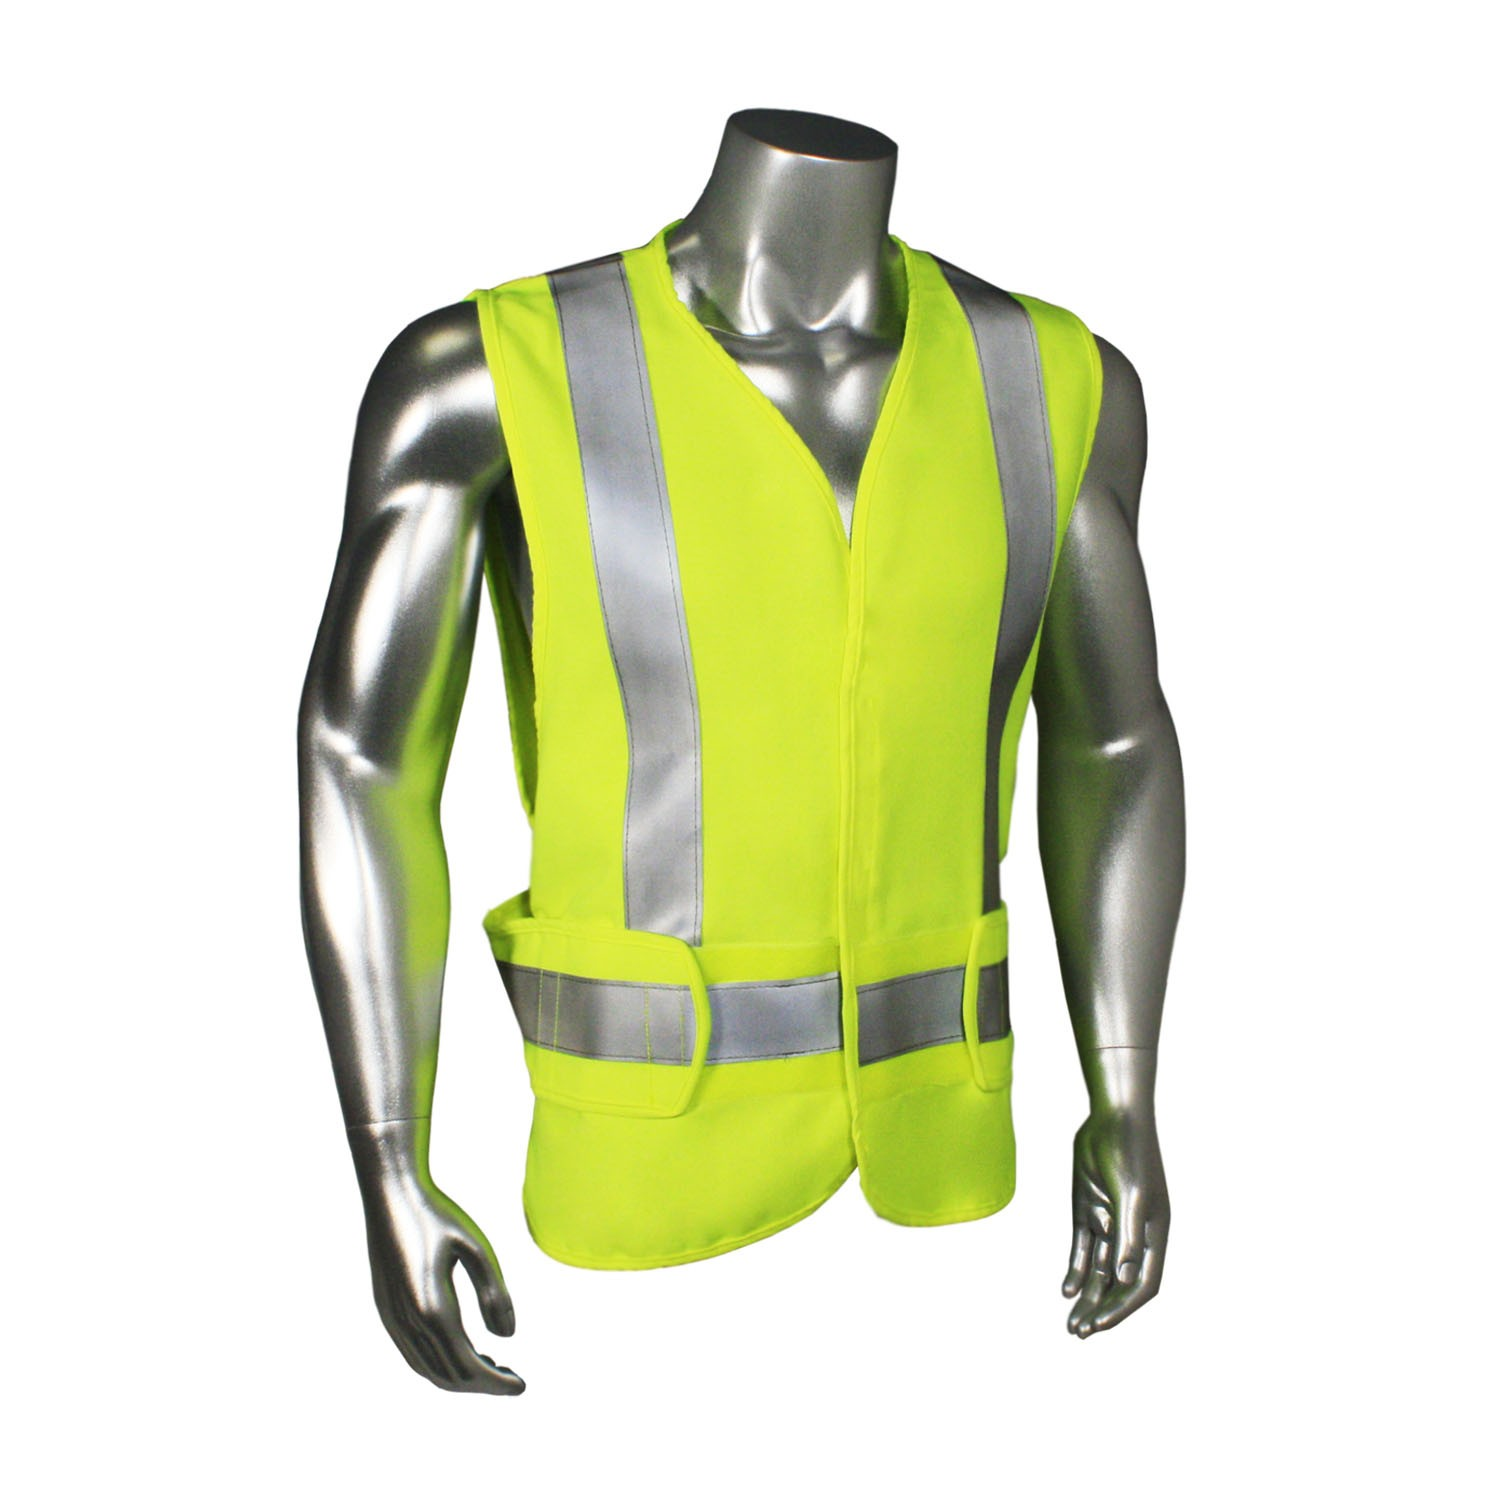 Adjustable Fire Retardant Safety Vest (#LHV-UTL-A)